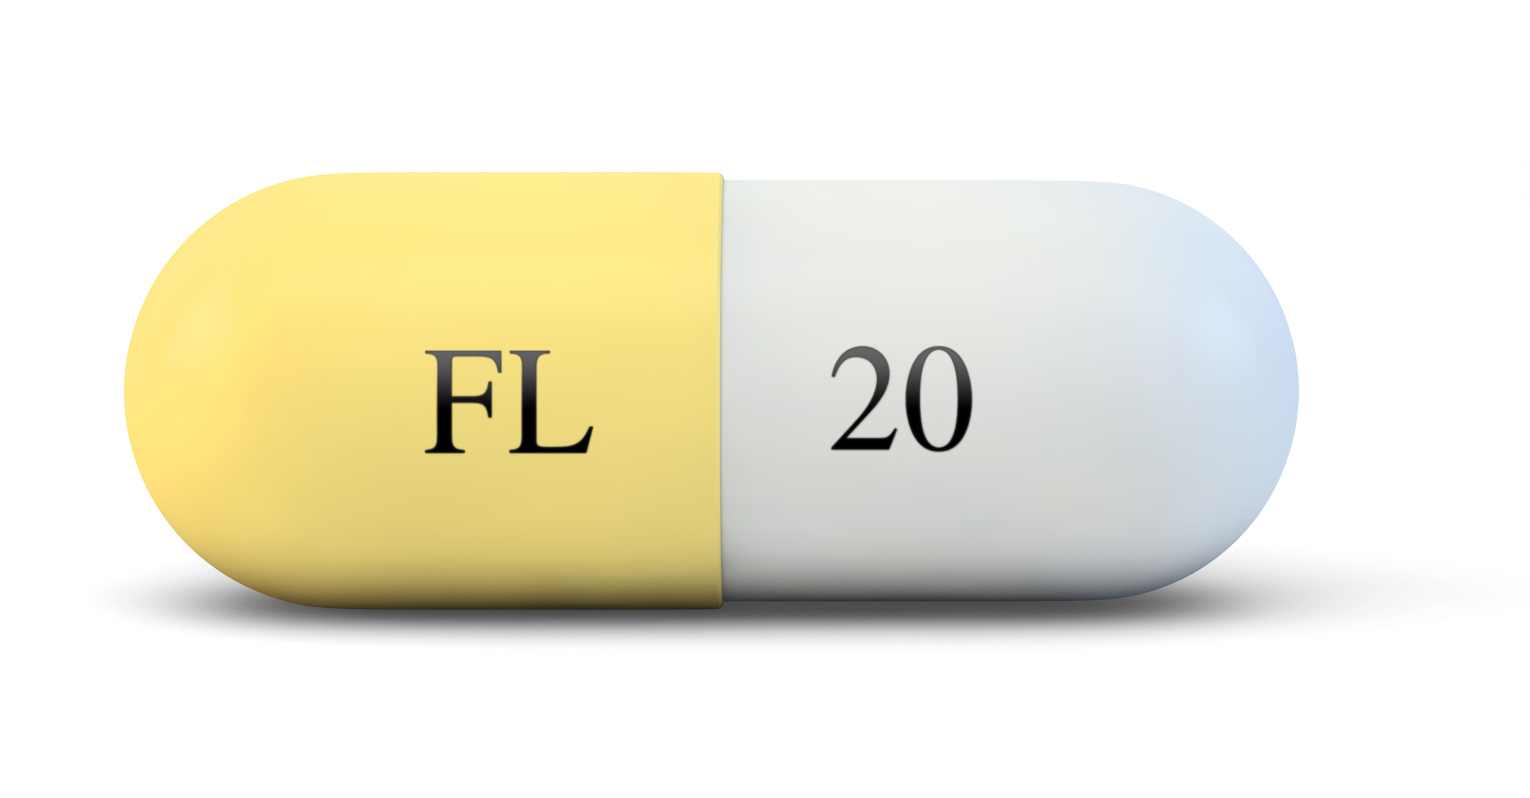 FETZIMA 20 mg pill (Photo: Business Wire)